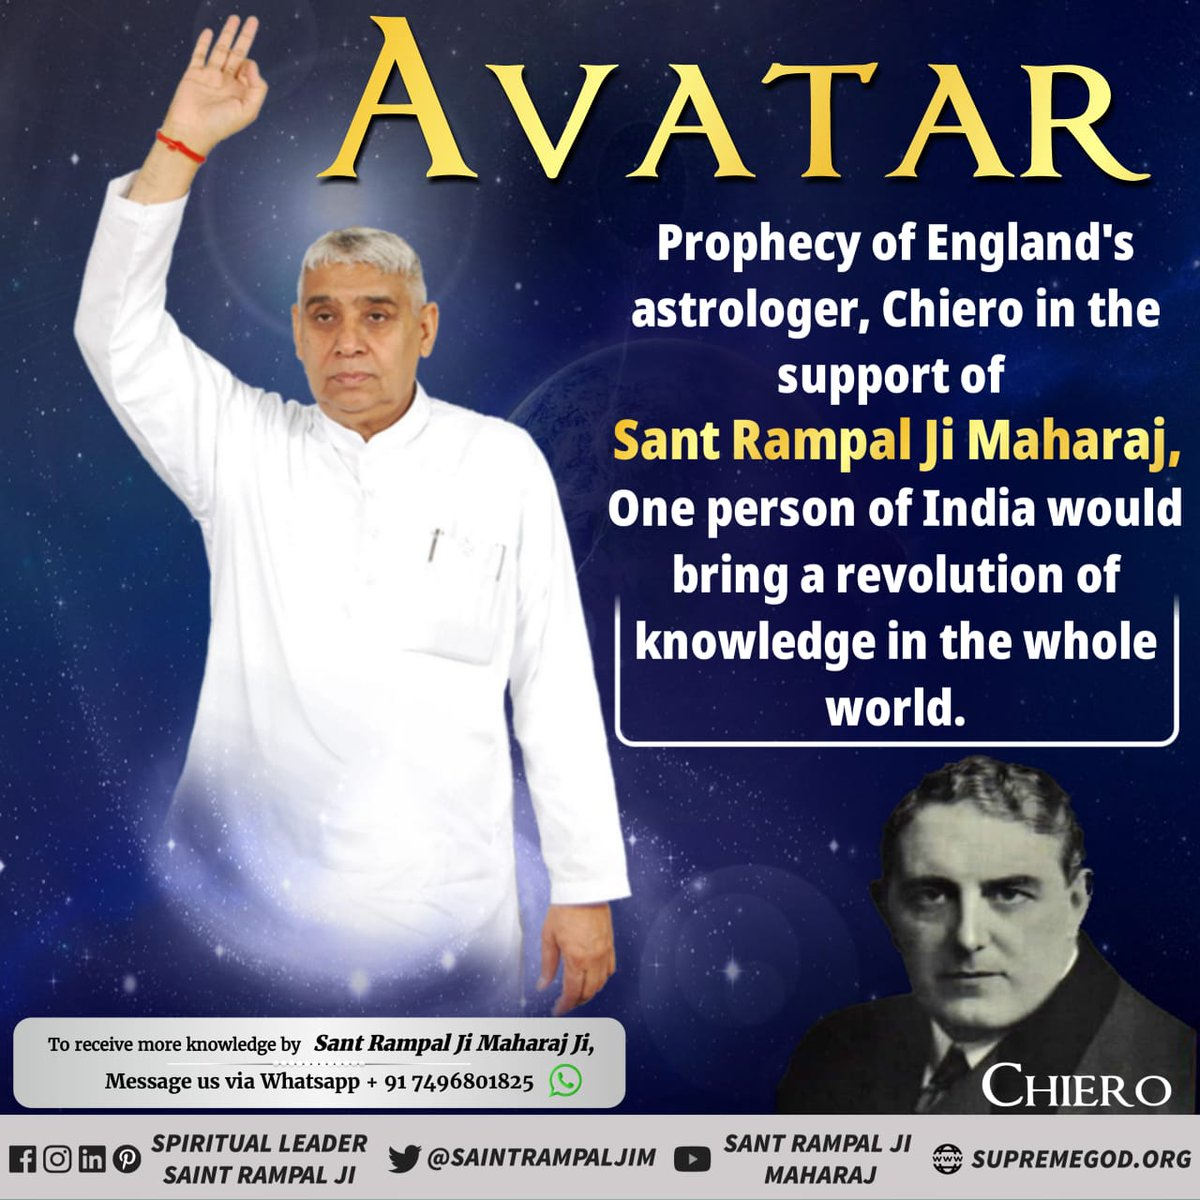 God On Earth Prediction of Shri Anandacharya of Norway about Sant Rampal Ji Maharaj.  A powerful religious organisation would come to light in India, whose master's, a householder's, code of conduct would be followed by the entire world.  #SaturdayMotivation